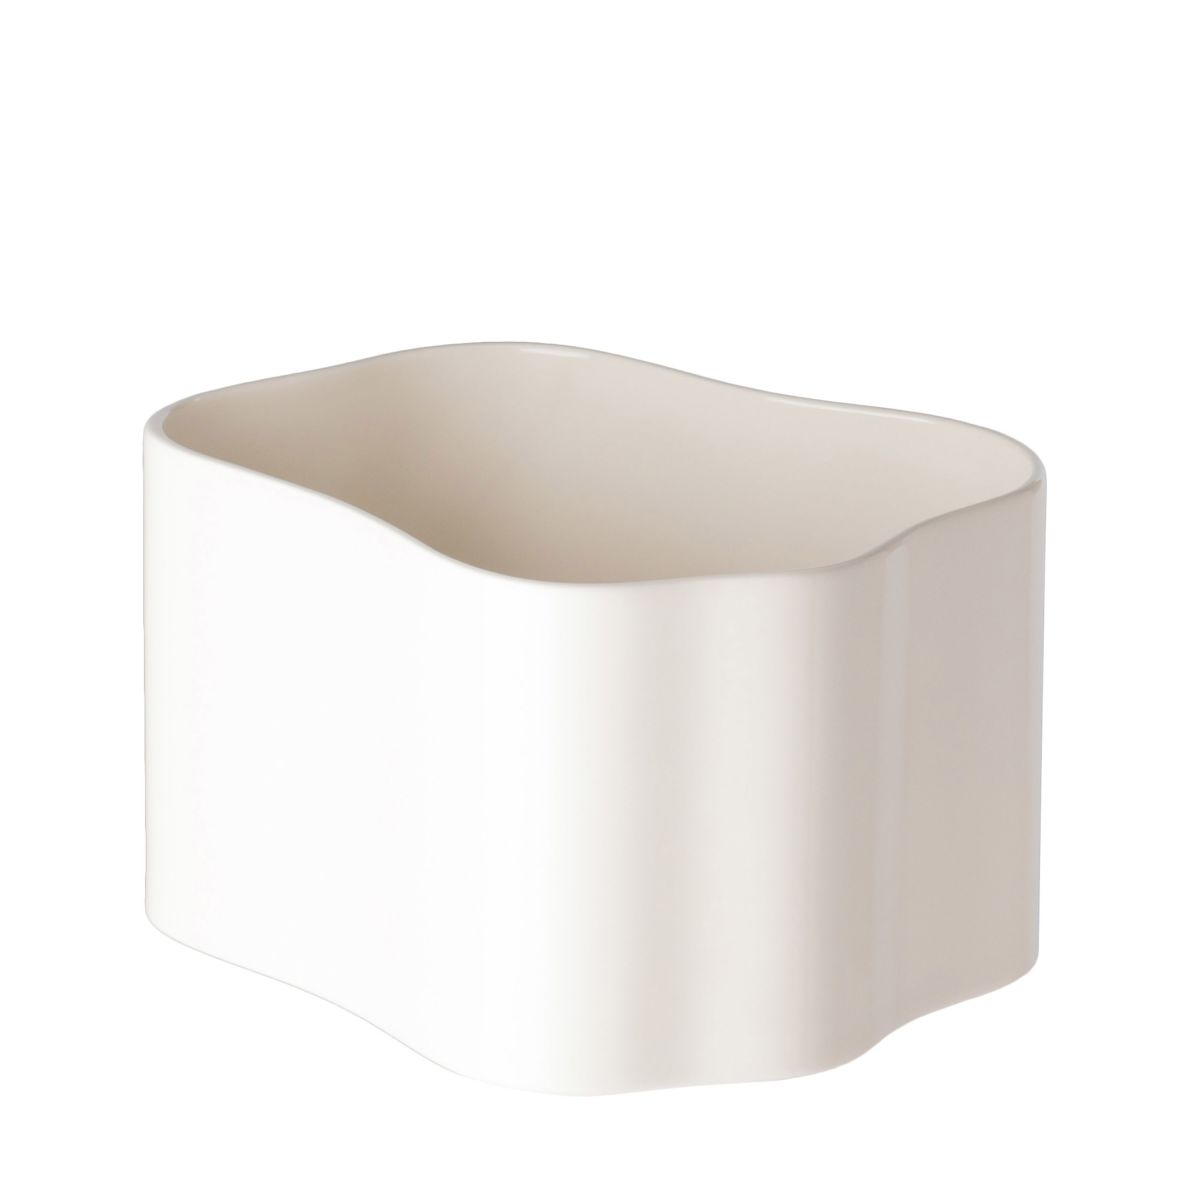 Riihitie-Plant-Pot-B-Medium-White_Web-1975951